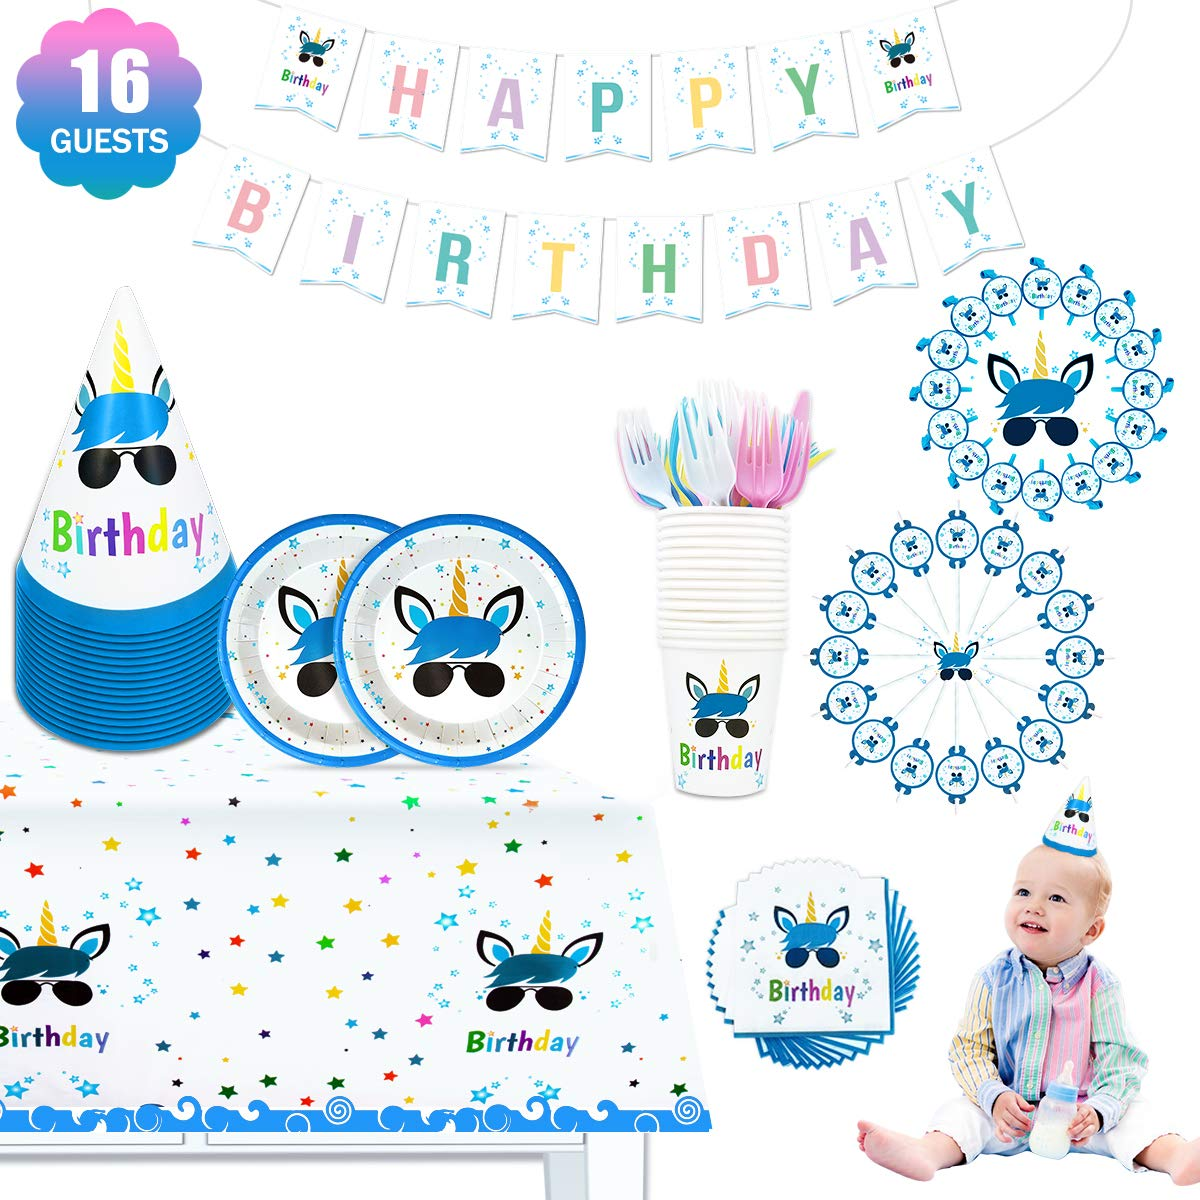 Unicorn Party Bundles for 16 Guests Page Three